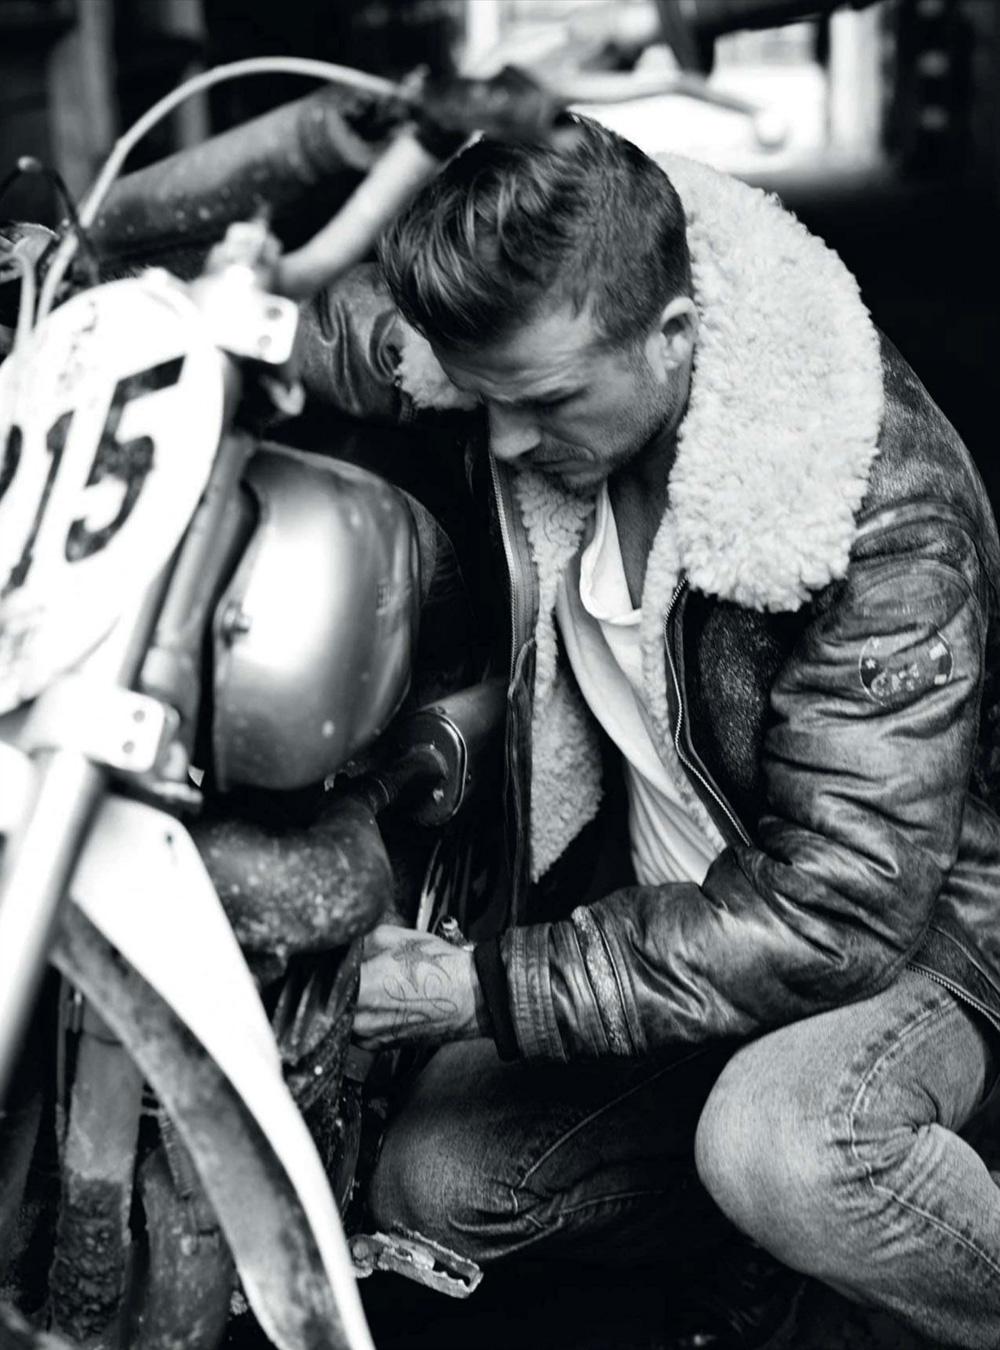 david-beckham-esquire-uk-september-2012-09.jpg